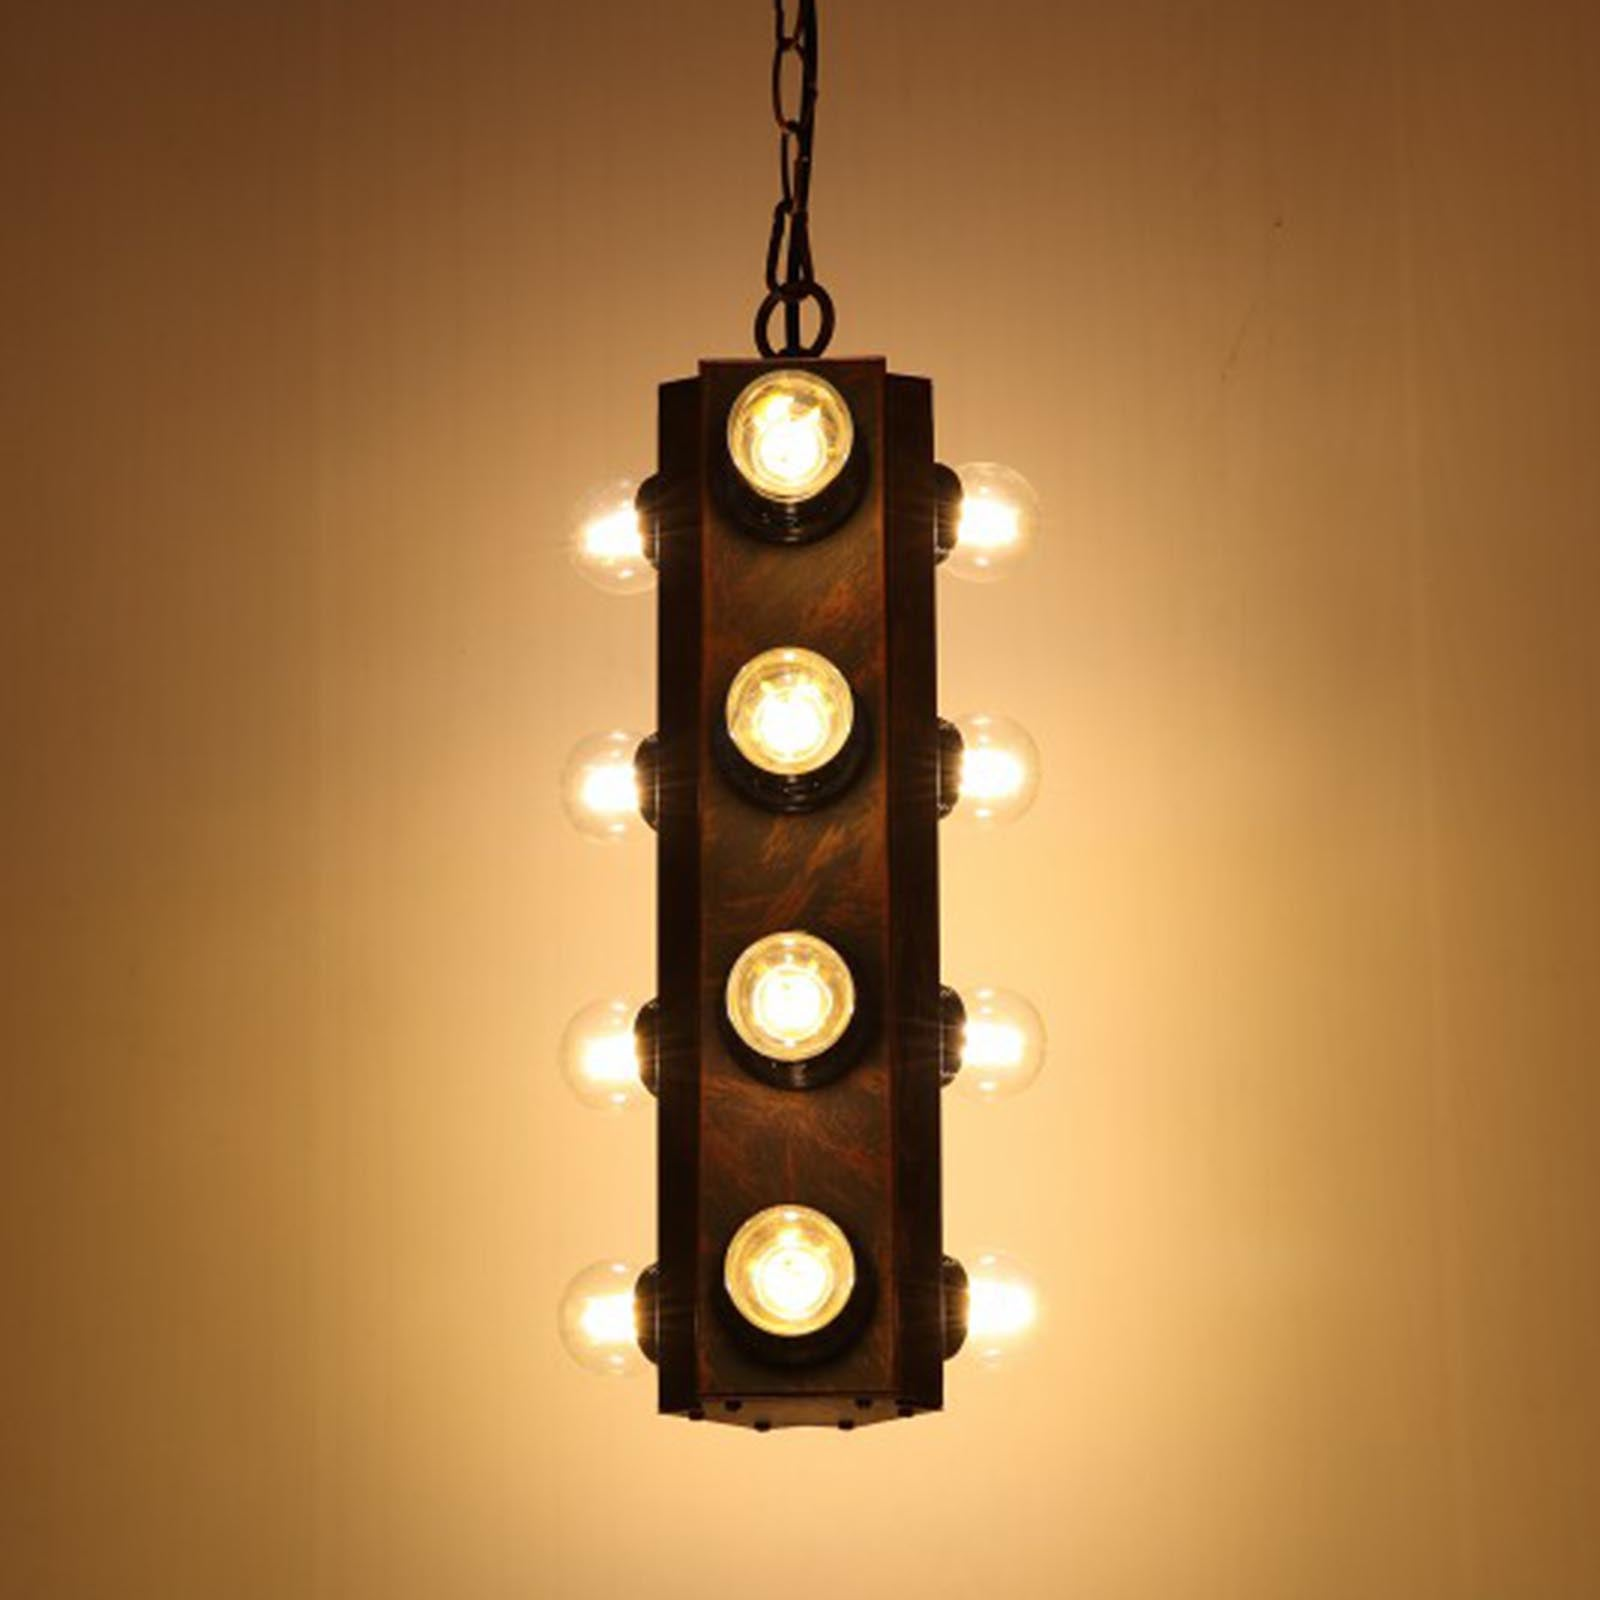 16 heads Industrial Retro  pendant  Lamp  CY-DD-330 -  16 رأس اناره نعلقه صناعيه - Shop Online Furniture and Home Decor Store in Dubai, UAE at ebarza